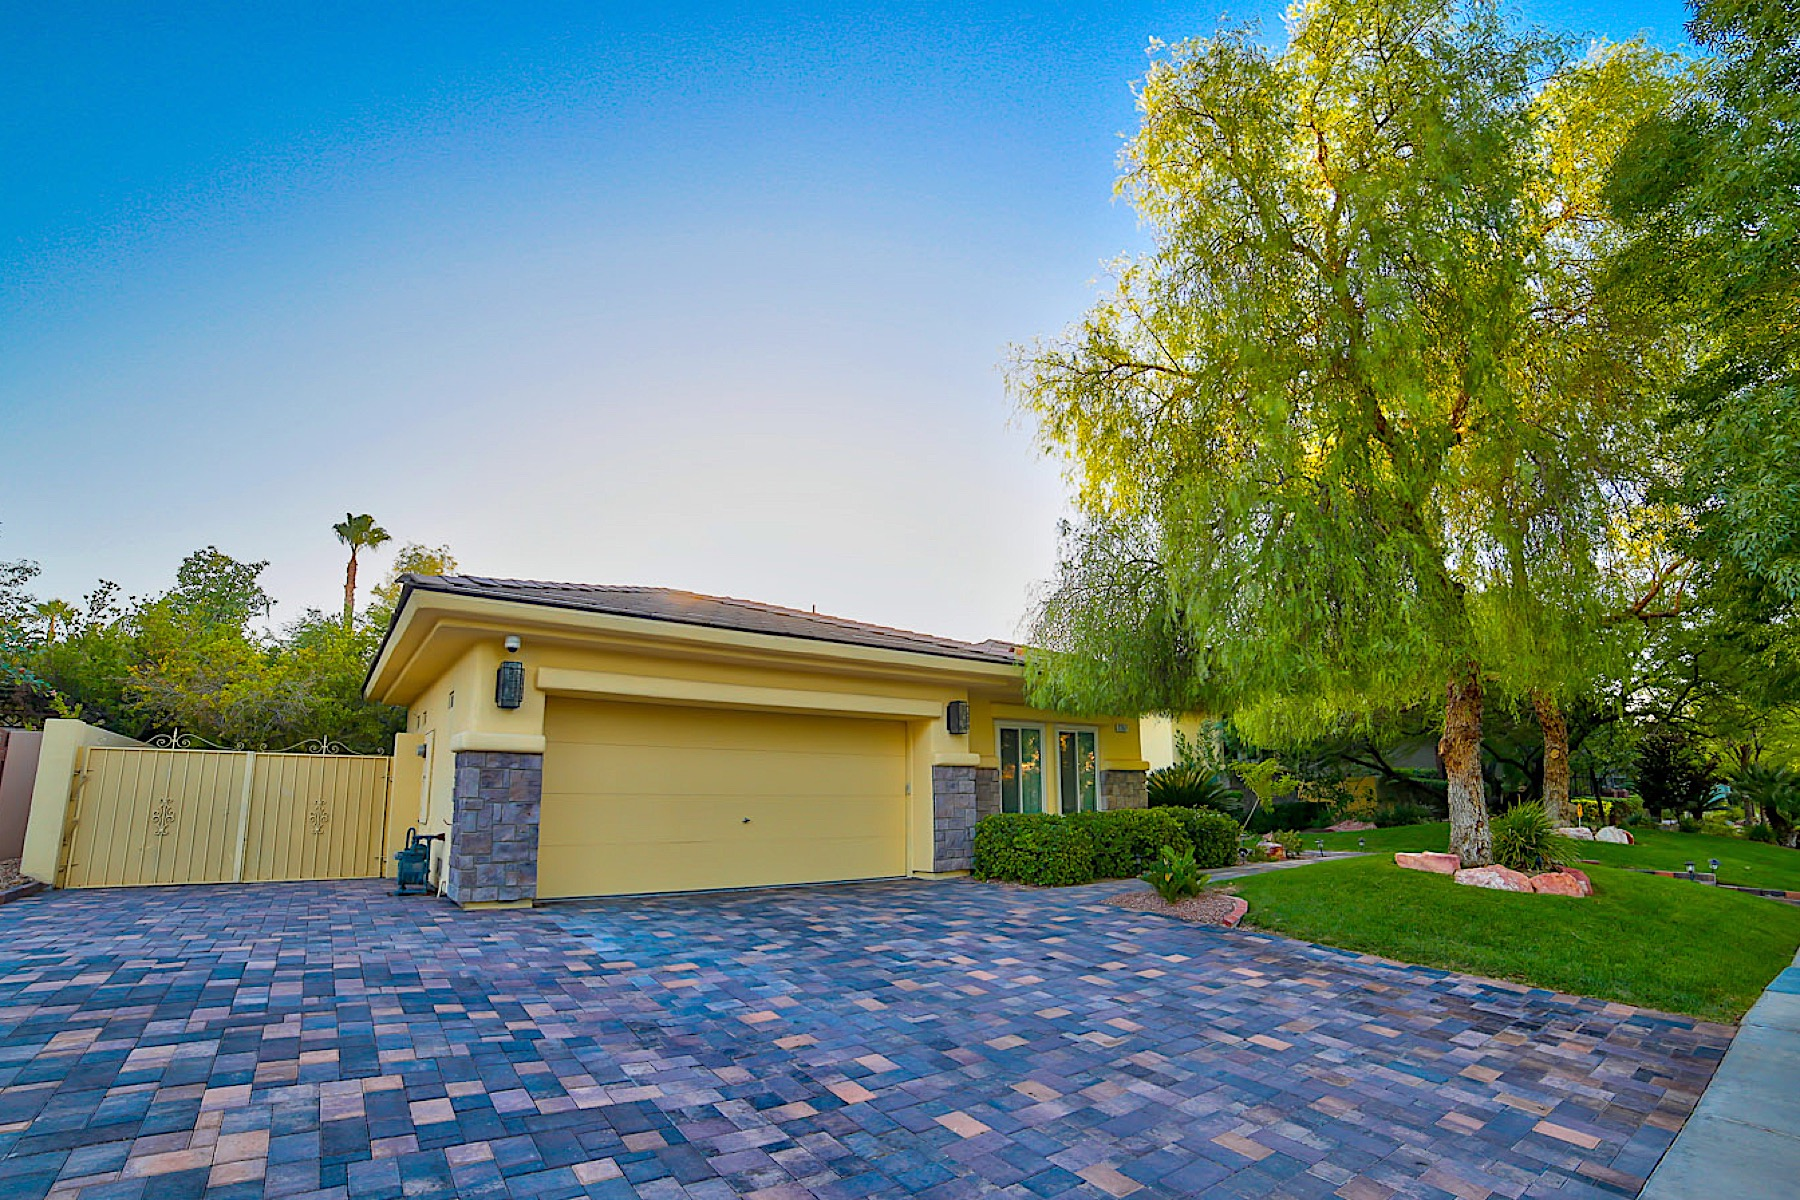 Single Family Home for Sale at 2267 Candlestick Ave Henderson, Nevada 89052 United States